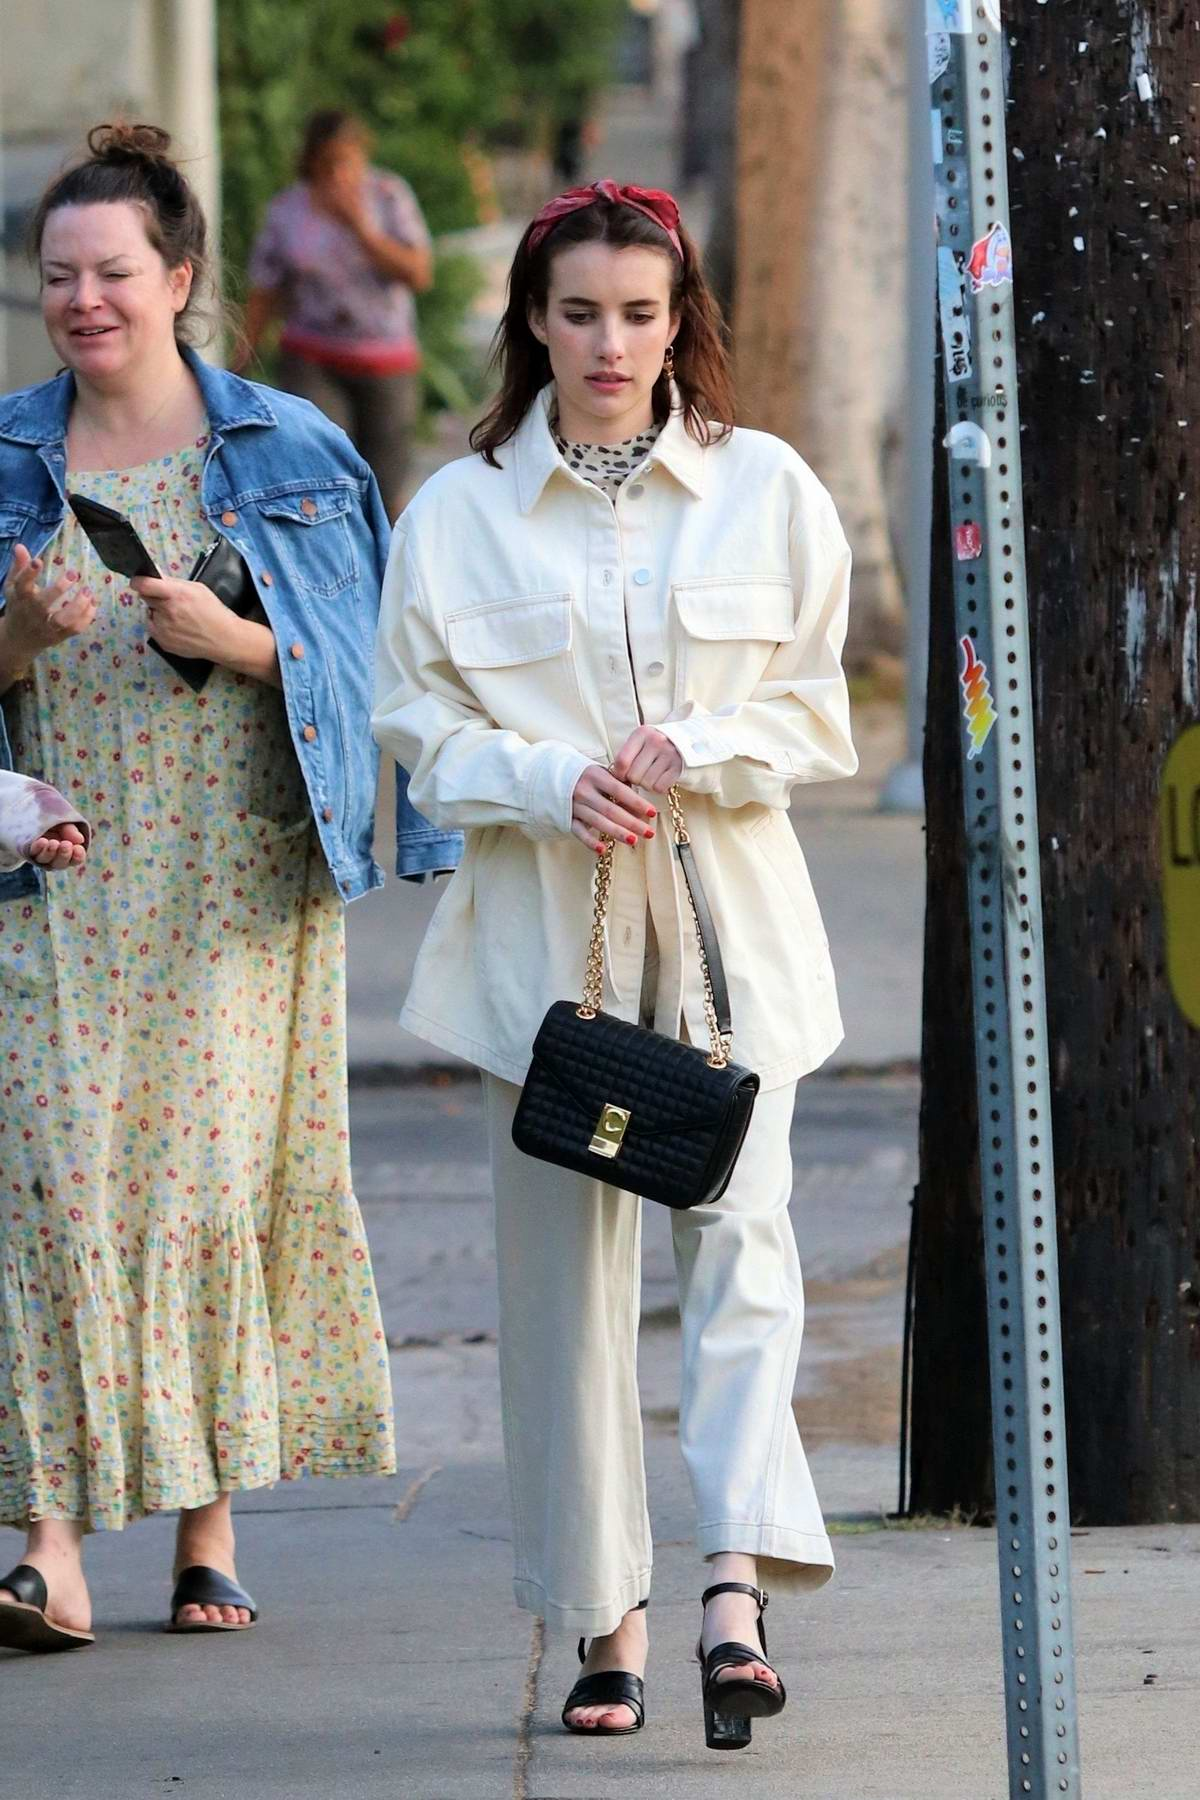 Emma Roberts looks stylish in white ensemble while out for dinner with a friend in Los Feliz, California